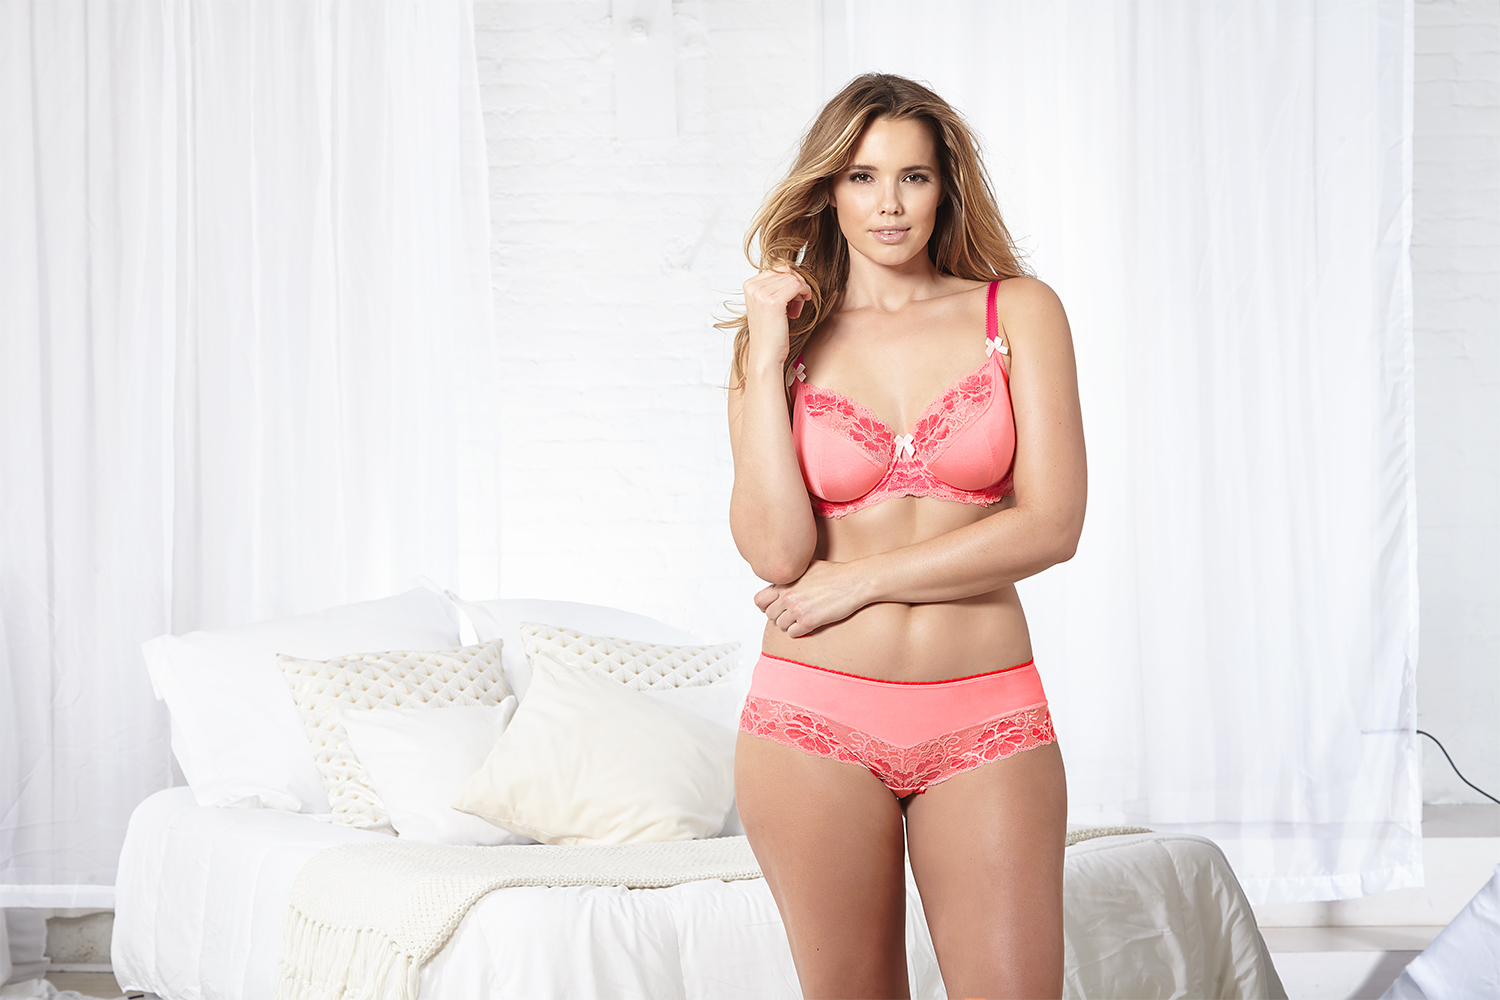 aa2d78178bb09 A full coverage bra is best for ladies who battle with spillage over their  cups. If you re wearing the right cup size